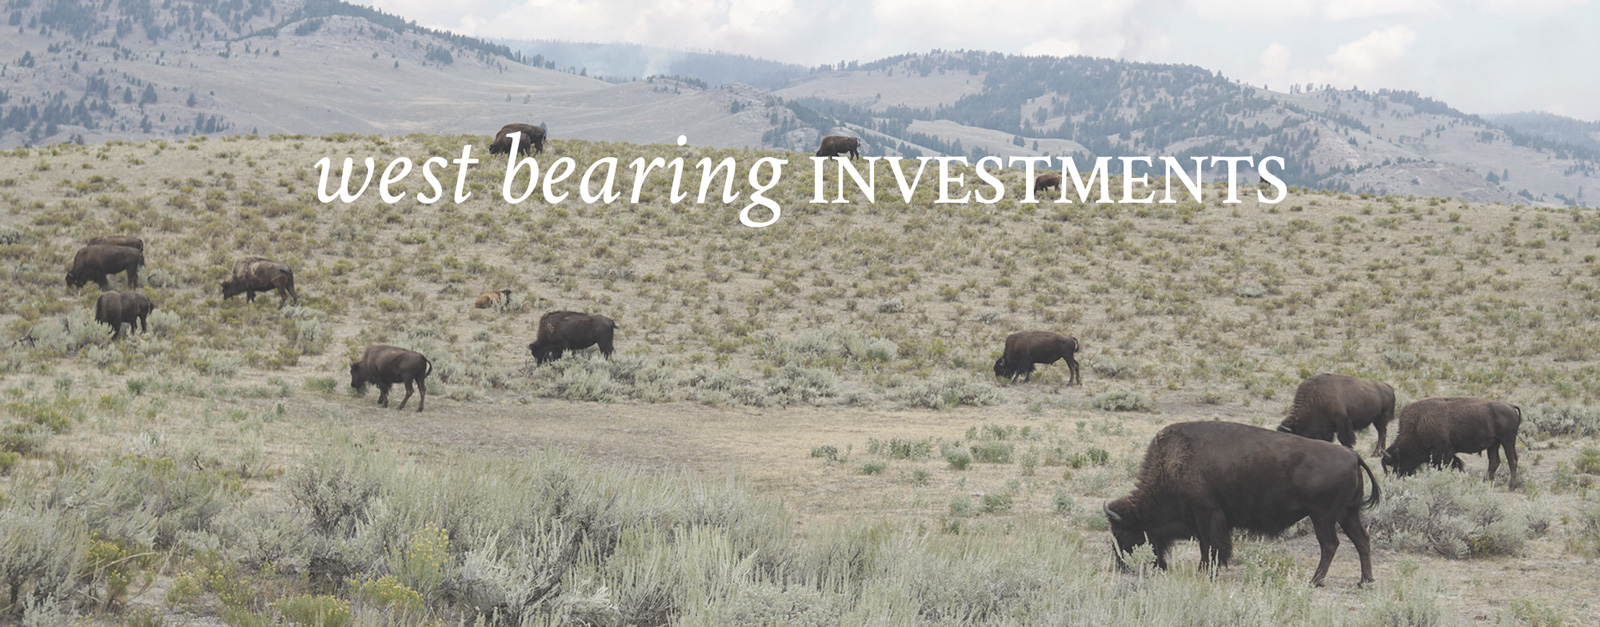 West Bearing Investments